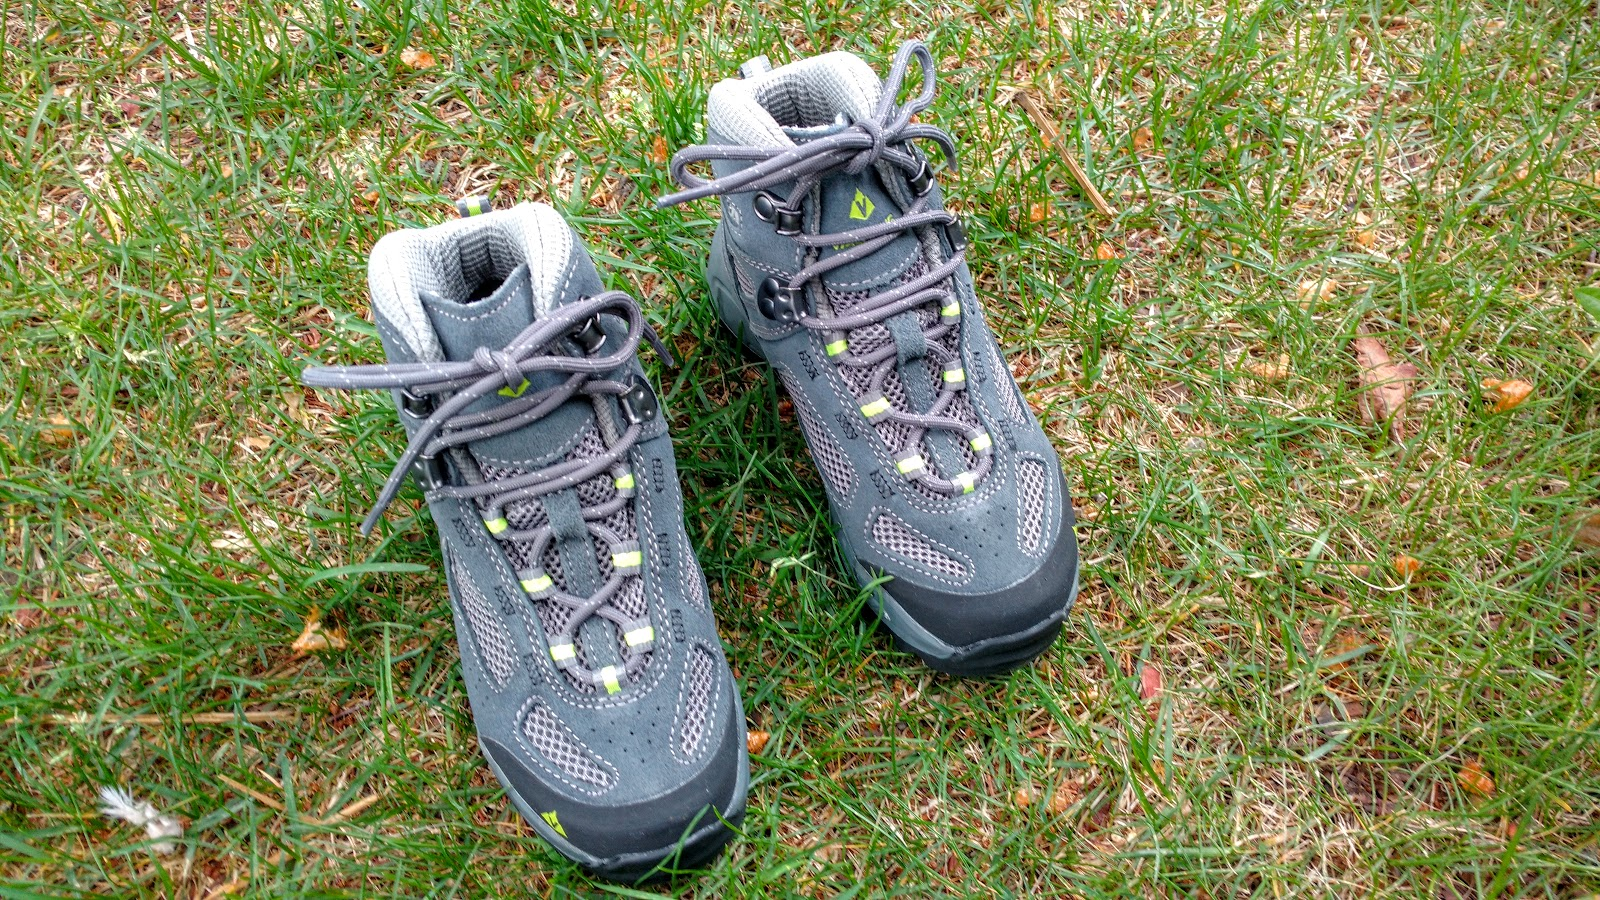 fbcca2a2381 Vasque Breeze 2.0 Kids' Ultradry Hiking Boots Review - Play Outside ...